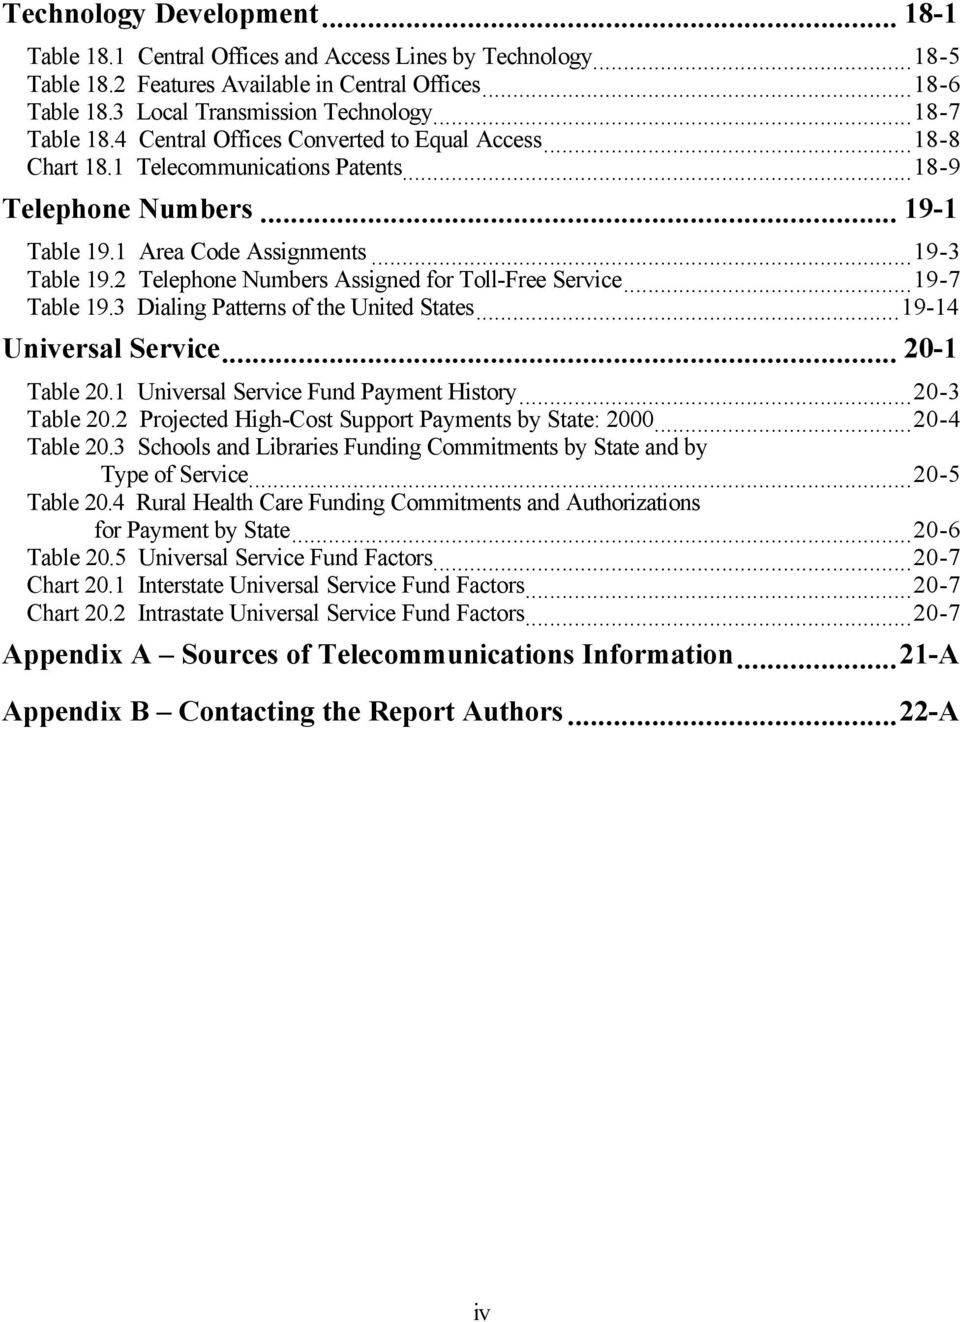 2 Telephone Numbers Assigned for Toll-Free Service...19-7 Table 19.3 Dialing Patterns of the United States...19-14 Universal Service... 20-1 Table 20.1 Universal Service Fund Payment History.